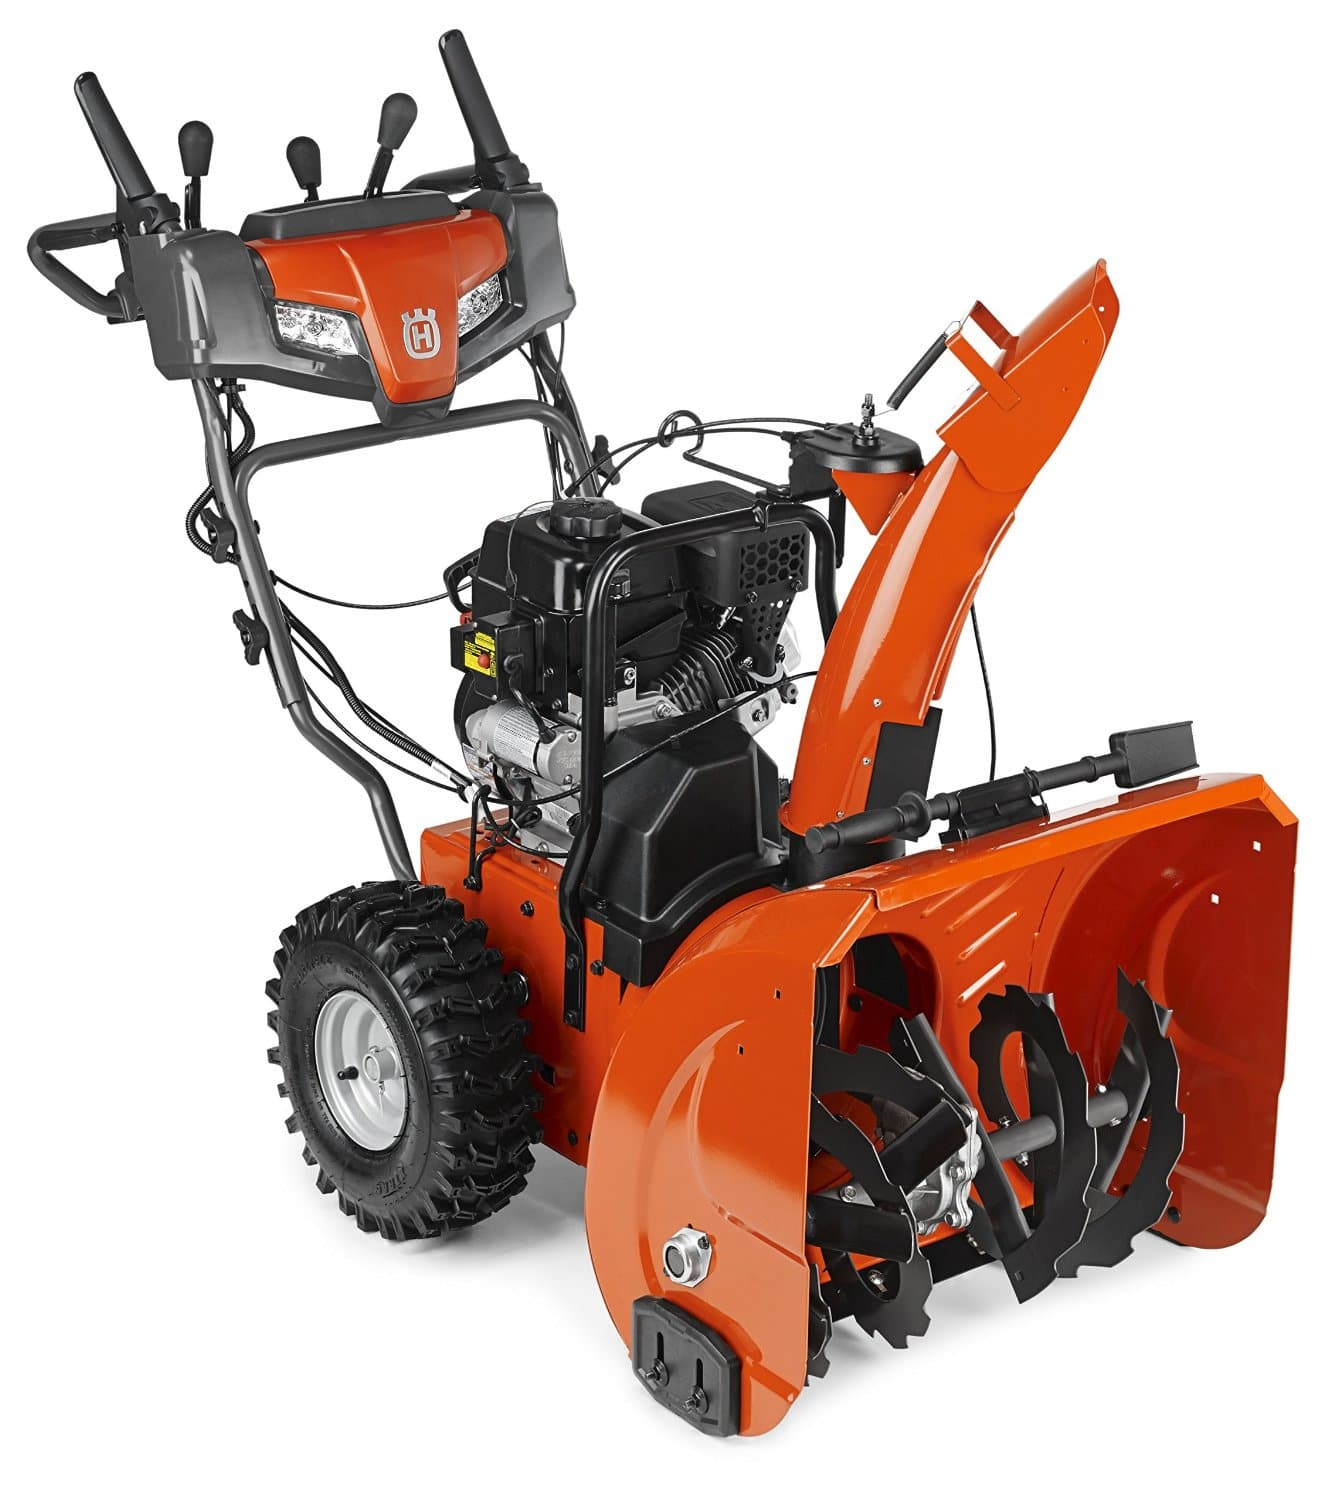 2 stage snow blower new best 2 stage snow blower reviews top 10 picks for 2016 28976